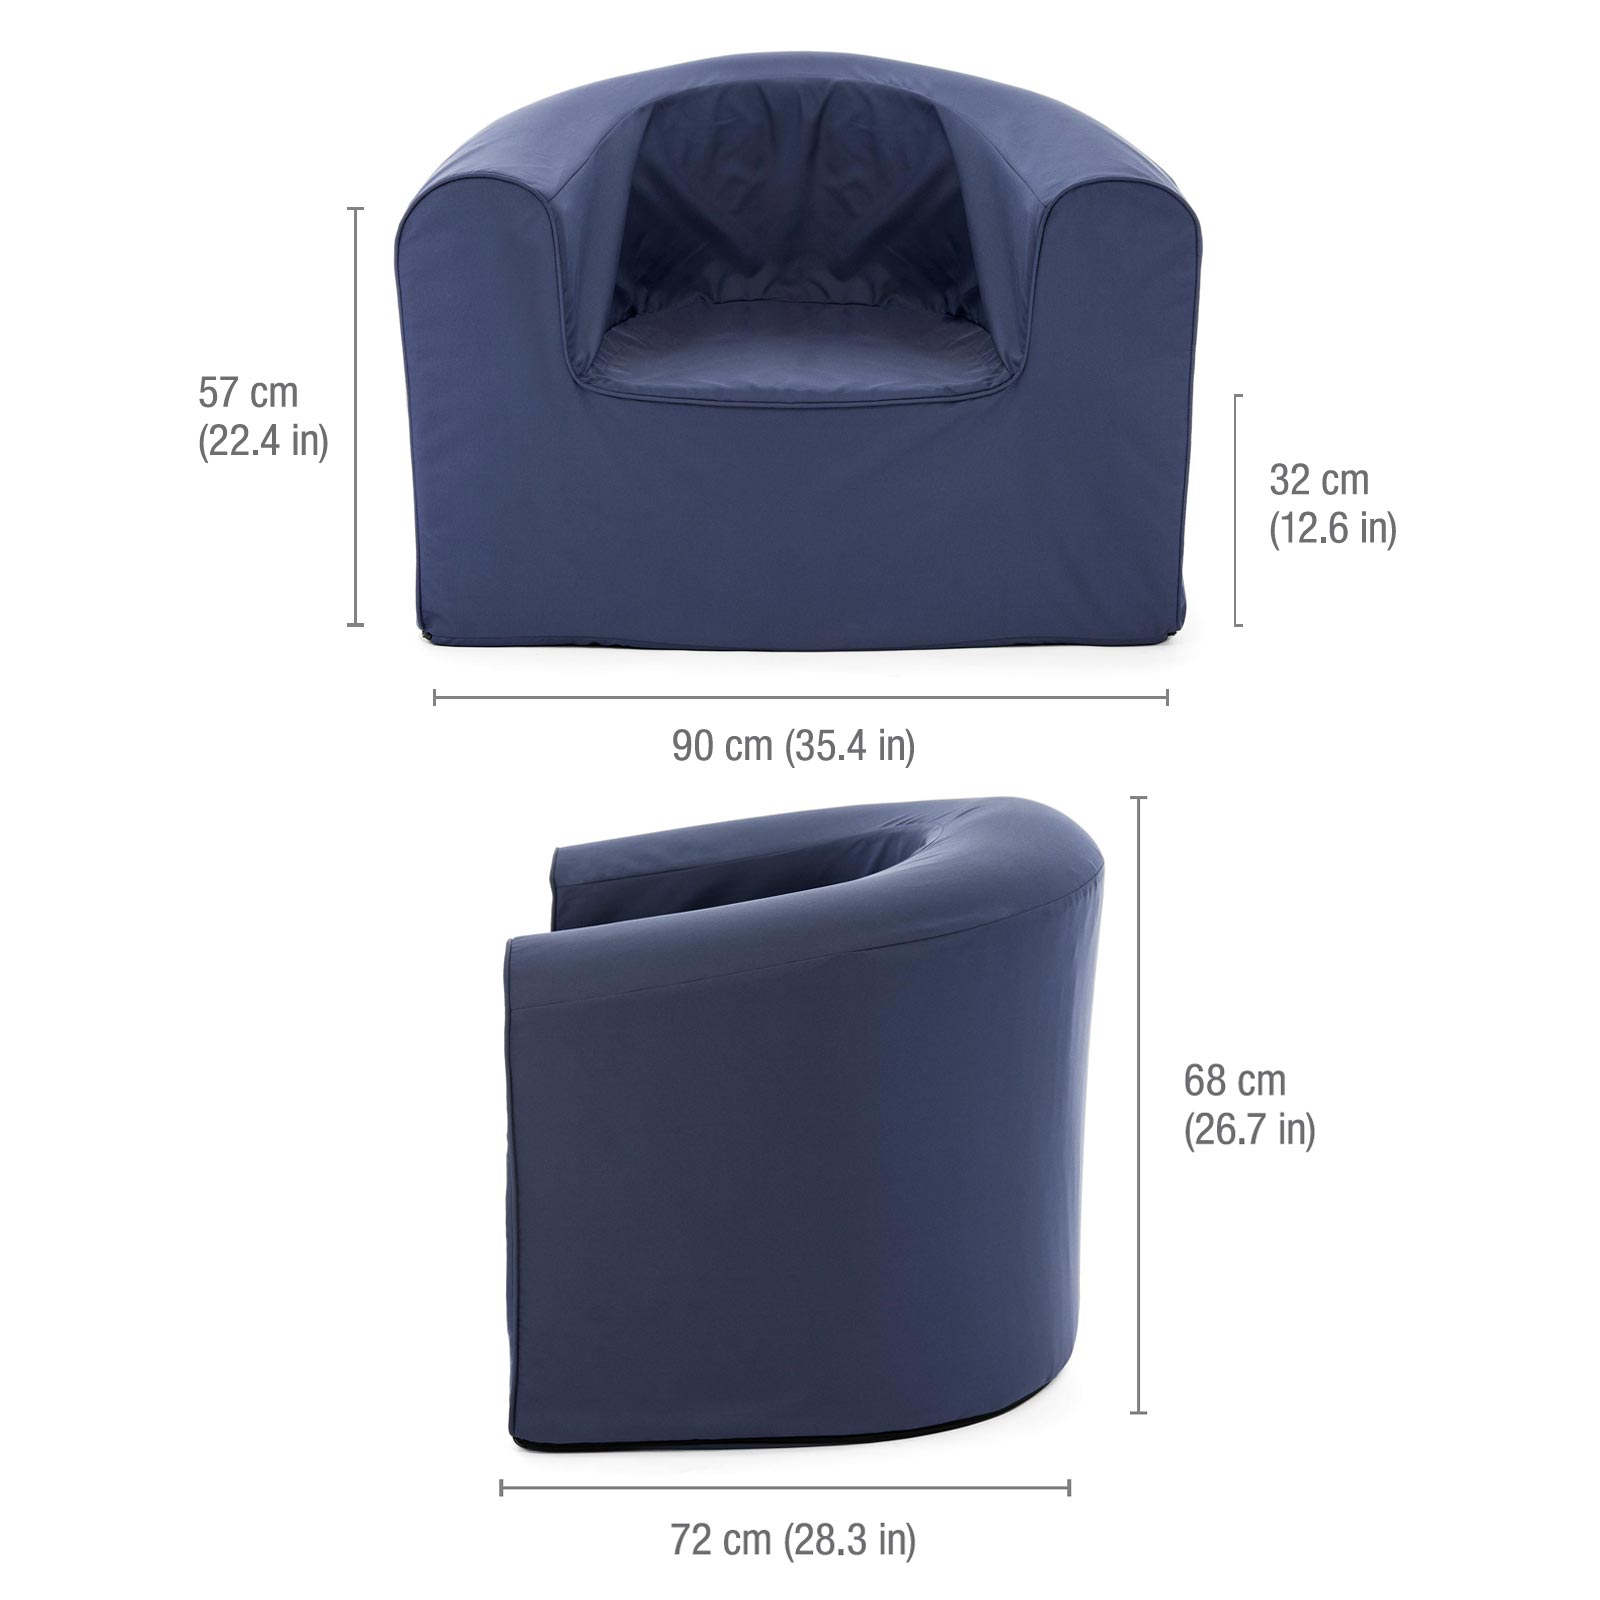 Image shows the dimensions of the adult crown blue pop lounge foam archair